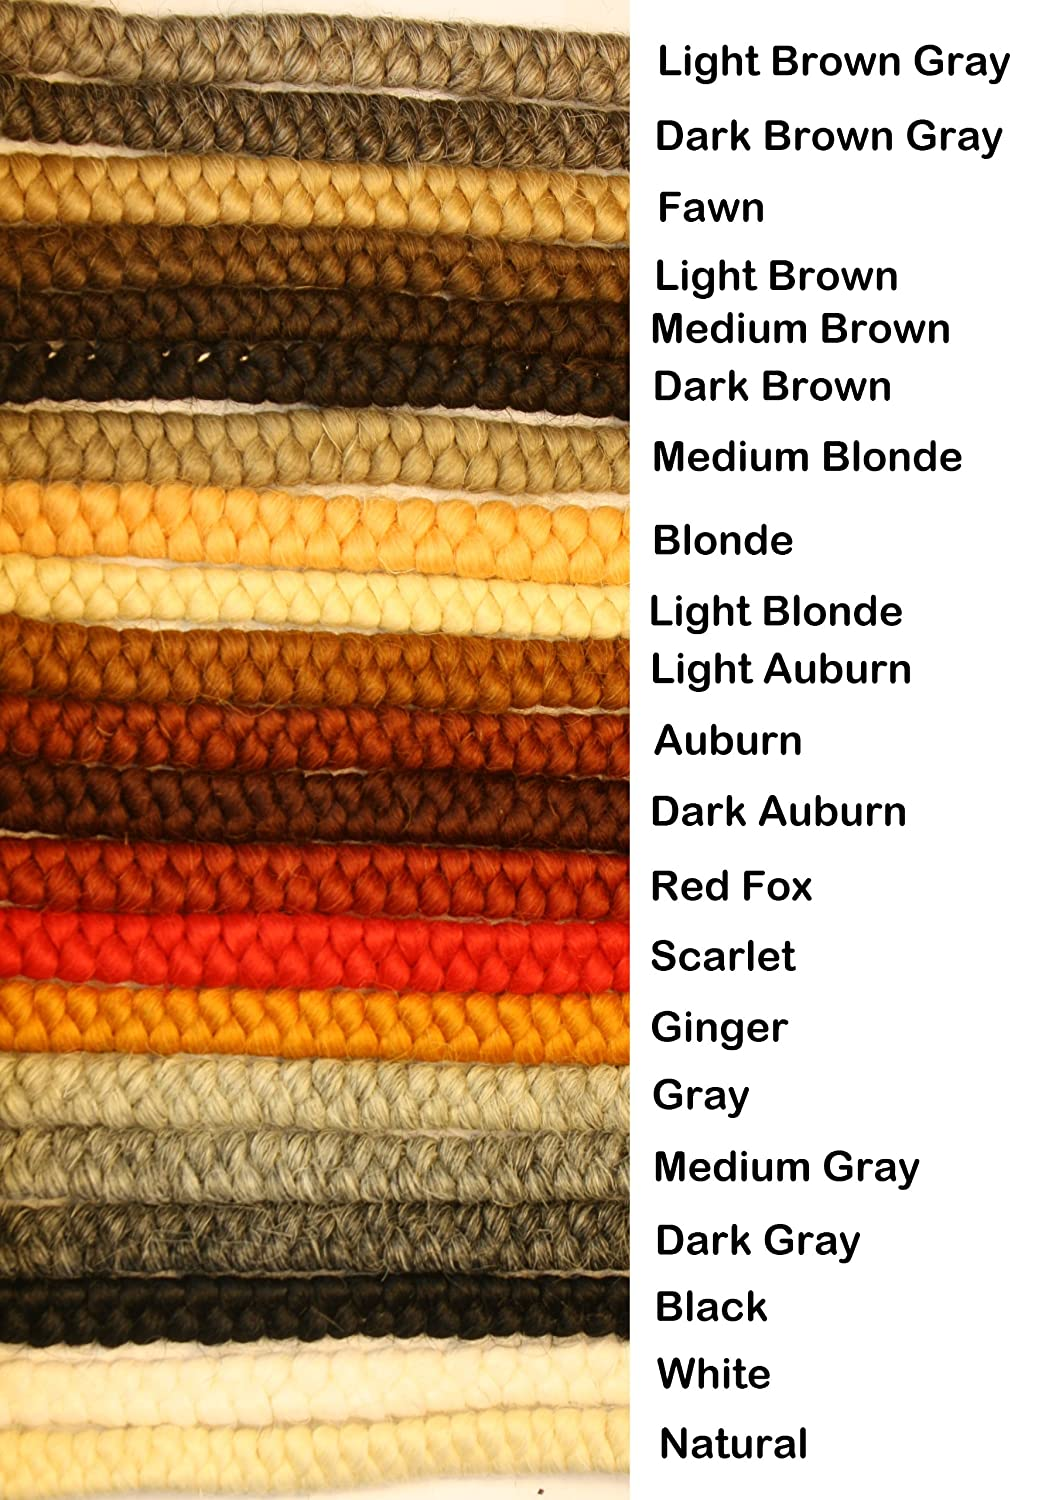 Crepe Wool Hair- Fawn Color for Doll Making or Theatrical Uses (False Beard or Mustache) fawnch